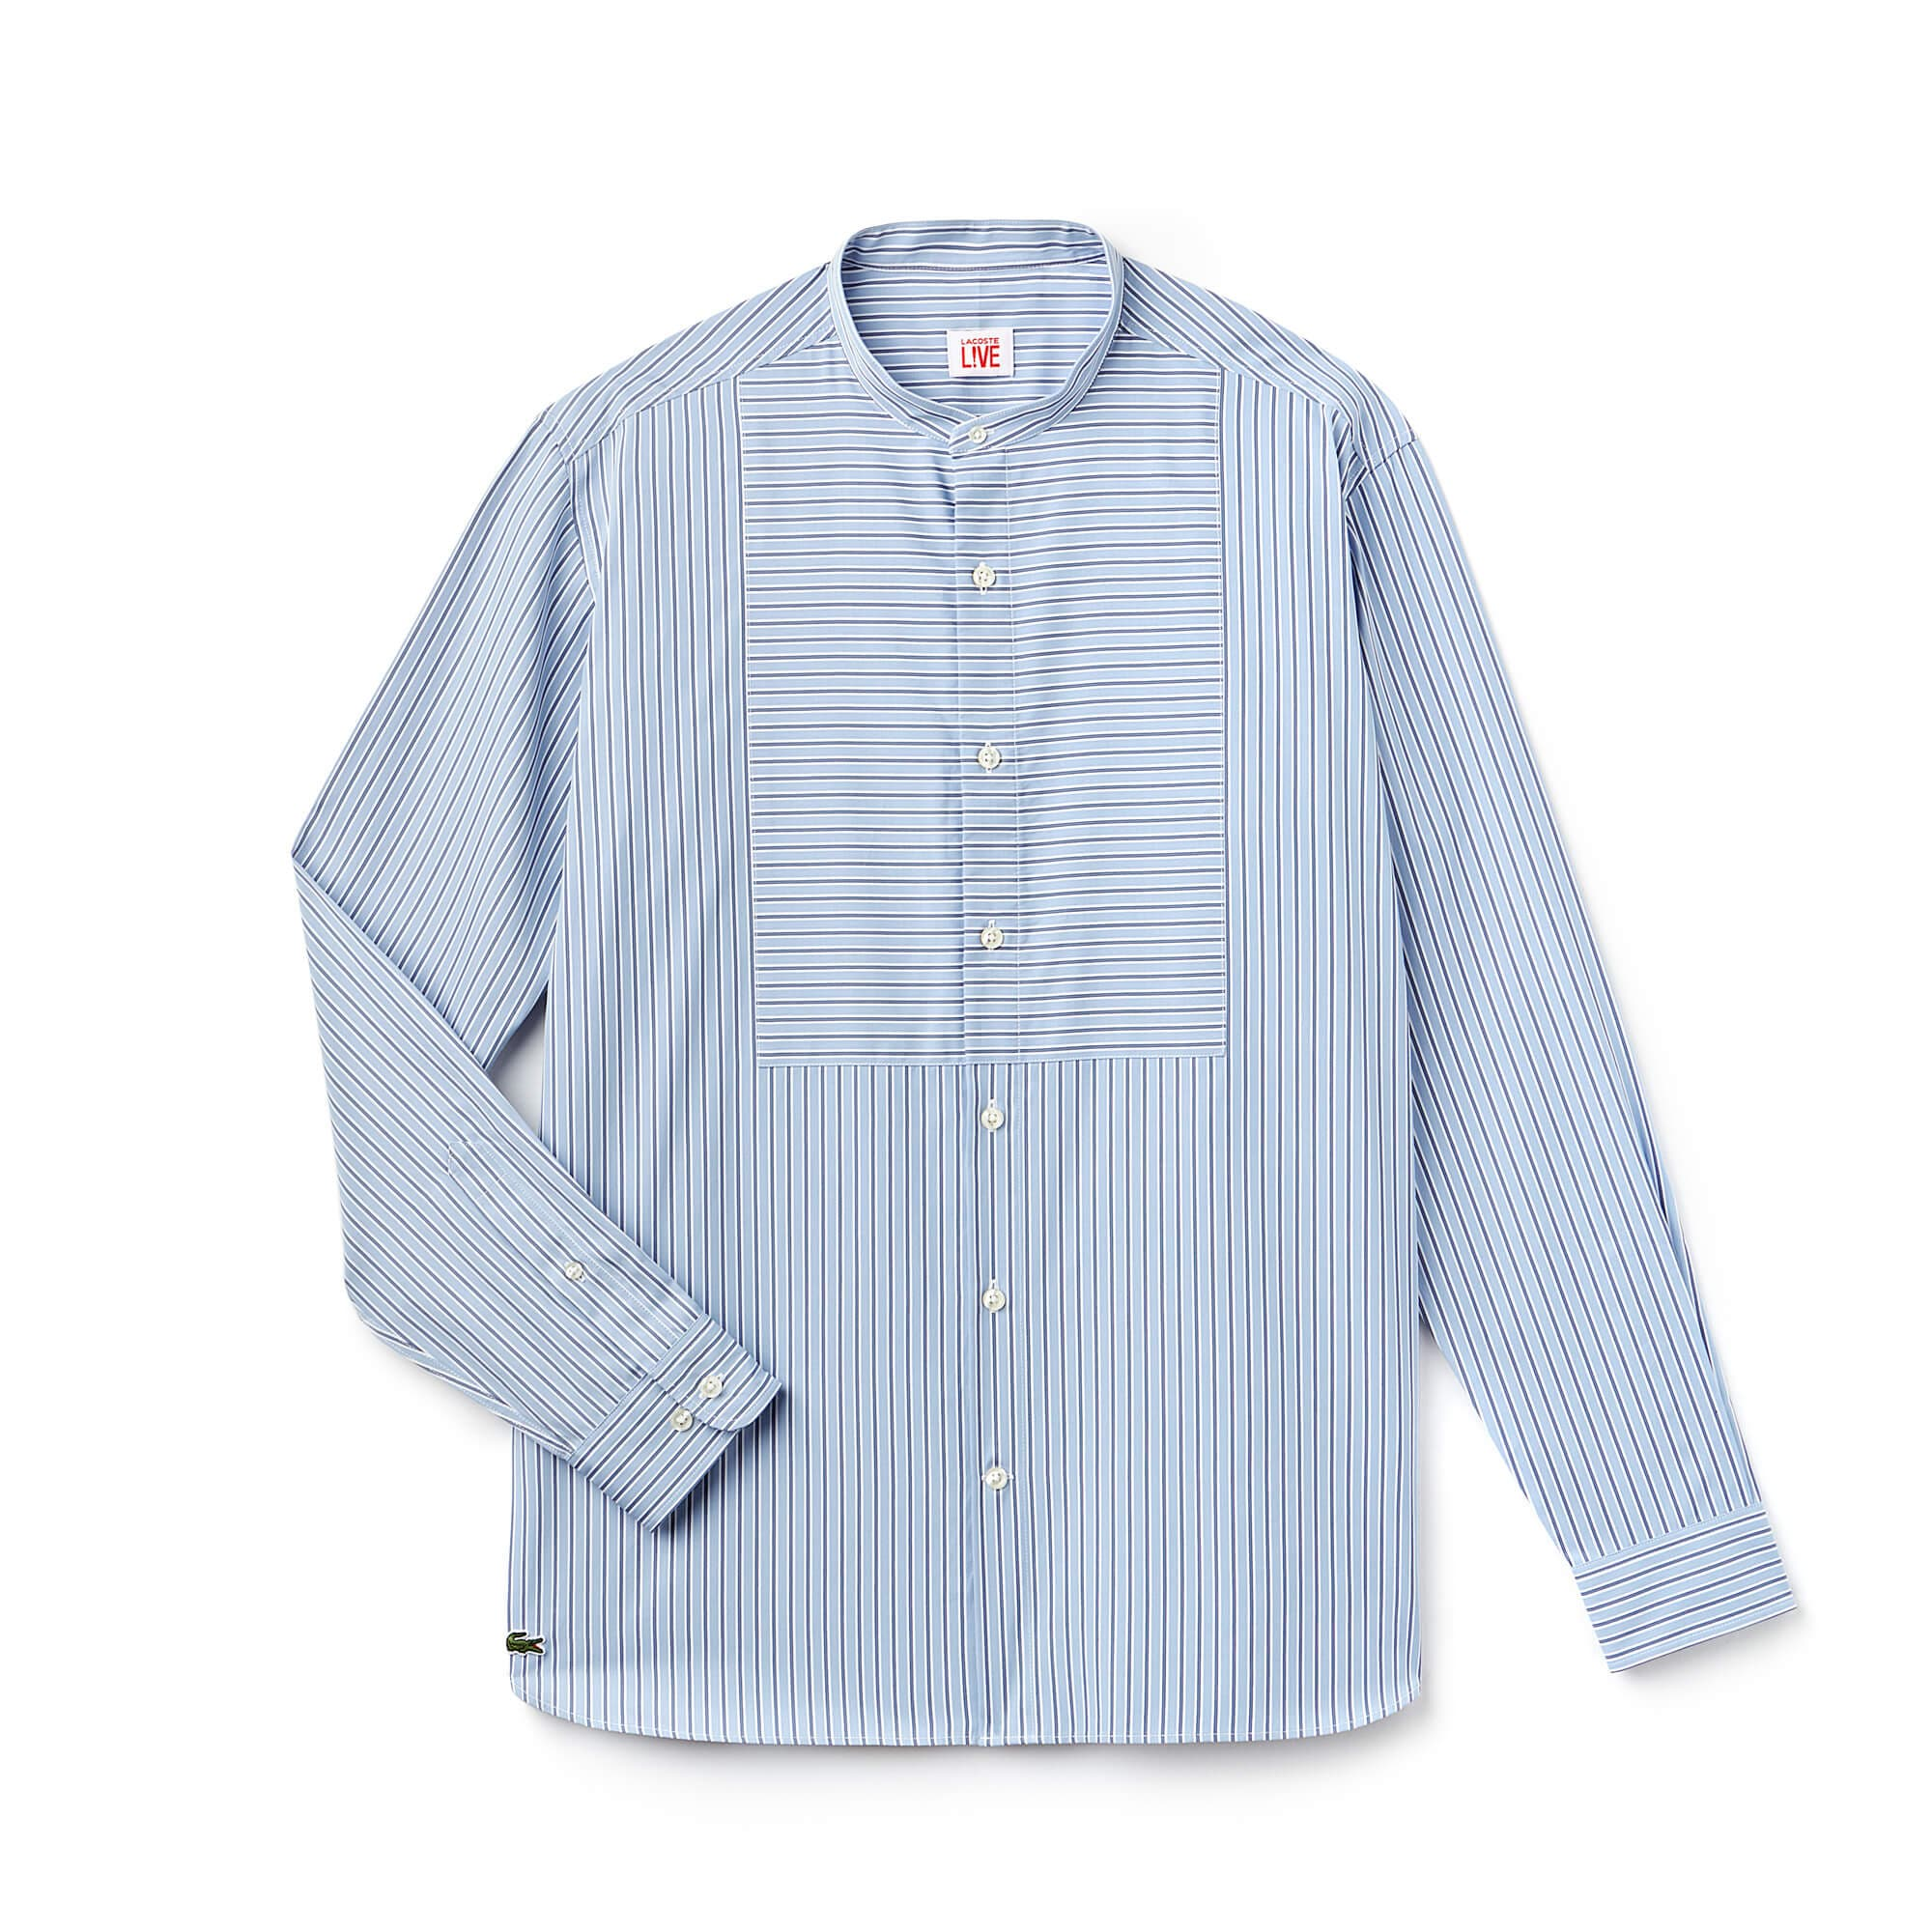 Camicia boxy fit Lacoste LIVE in popeline a righe